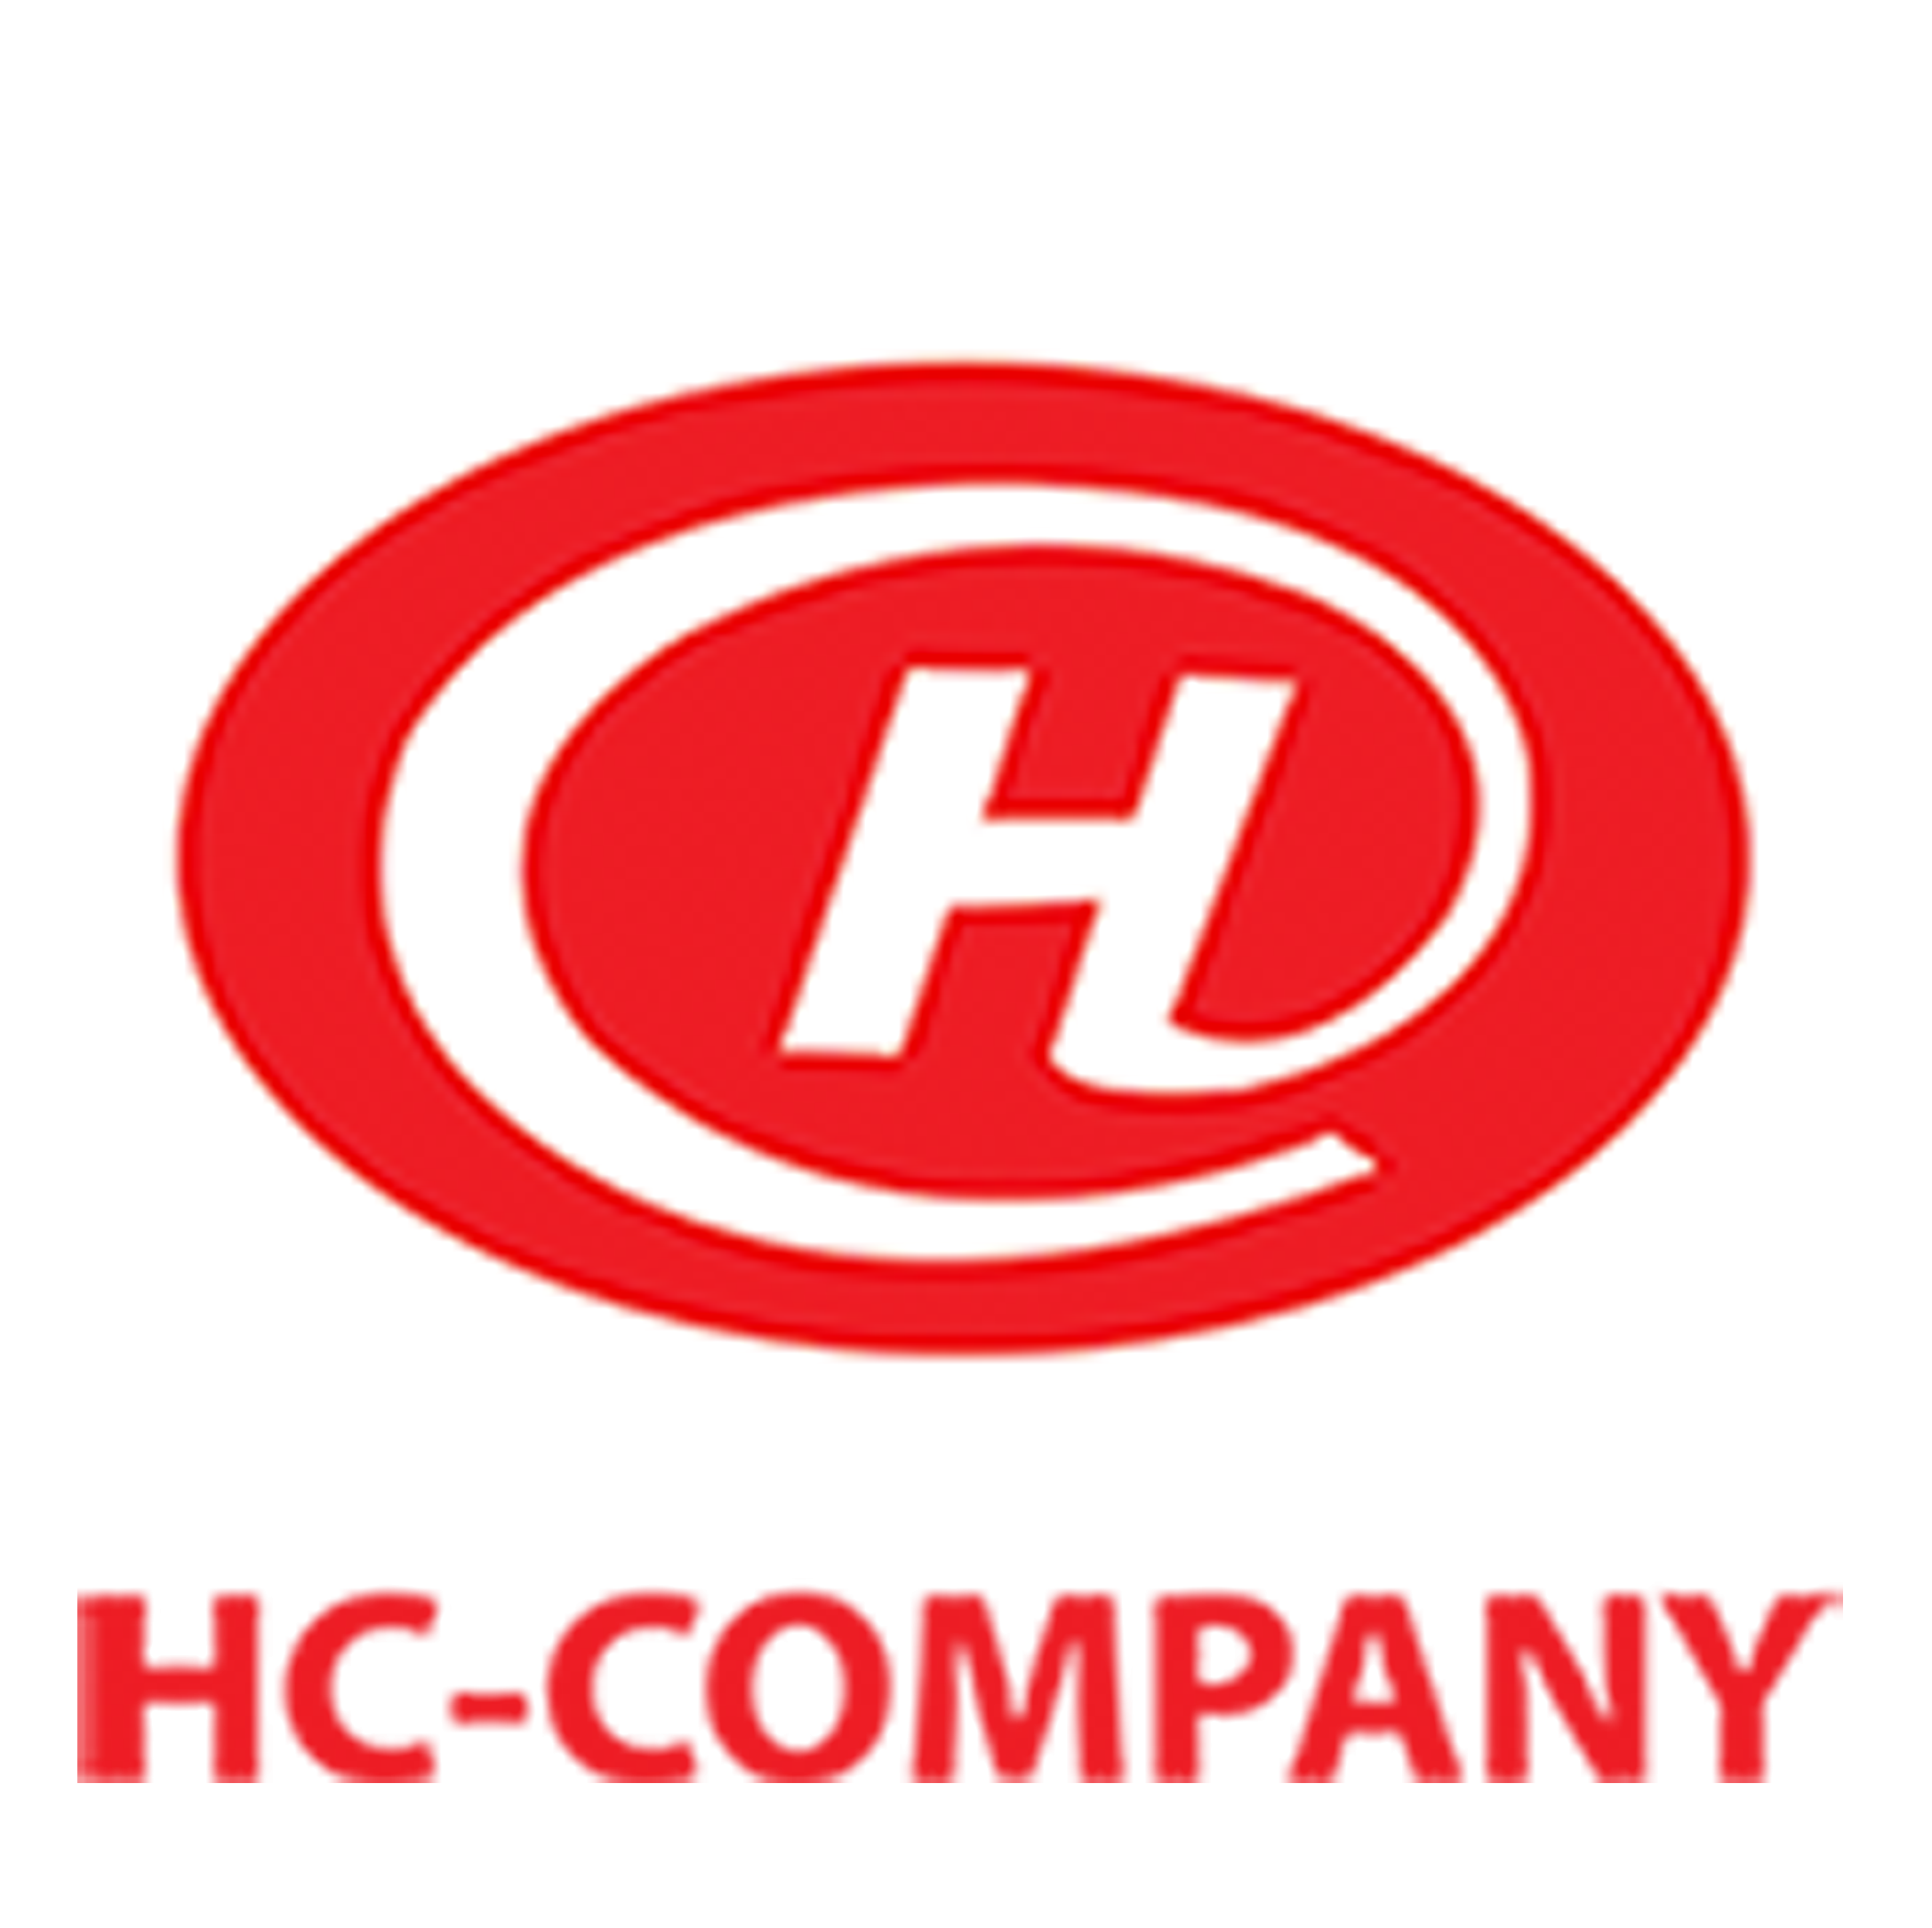 HAOCANH PORCELAIN PRODUCTION AND TRADING CO., LTD